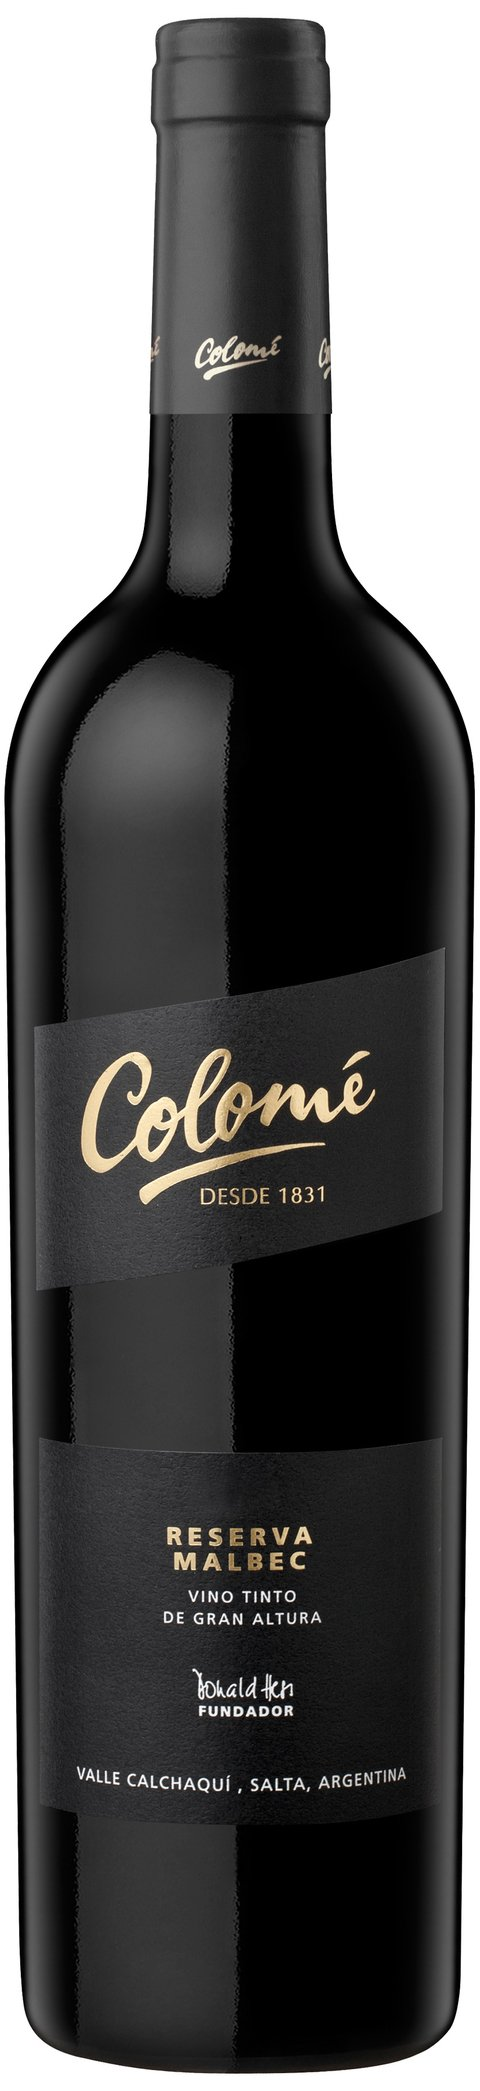 Colomé Reserva Malbec x750 ml